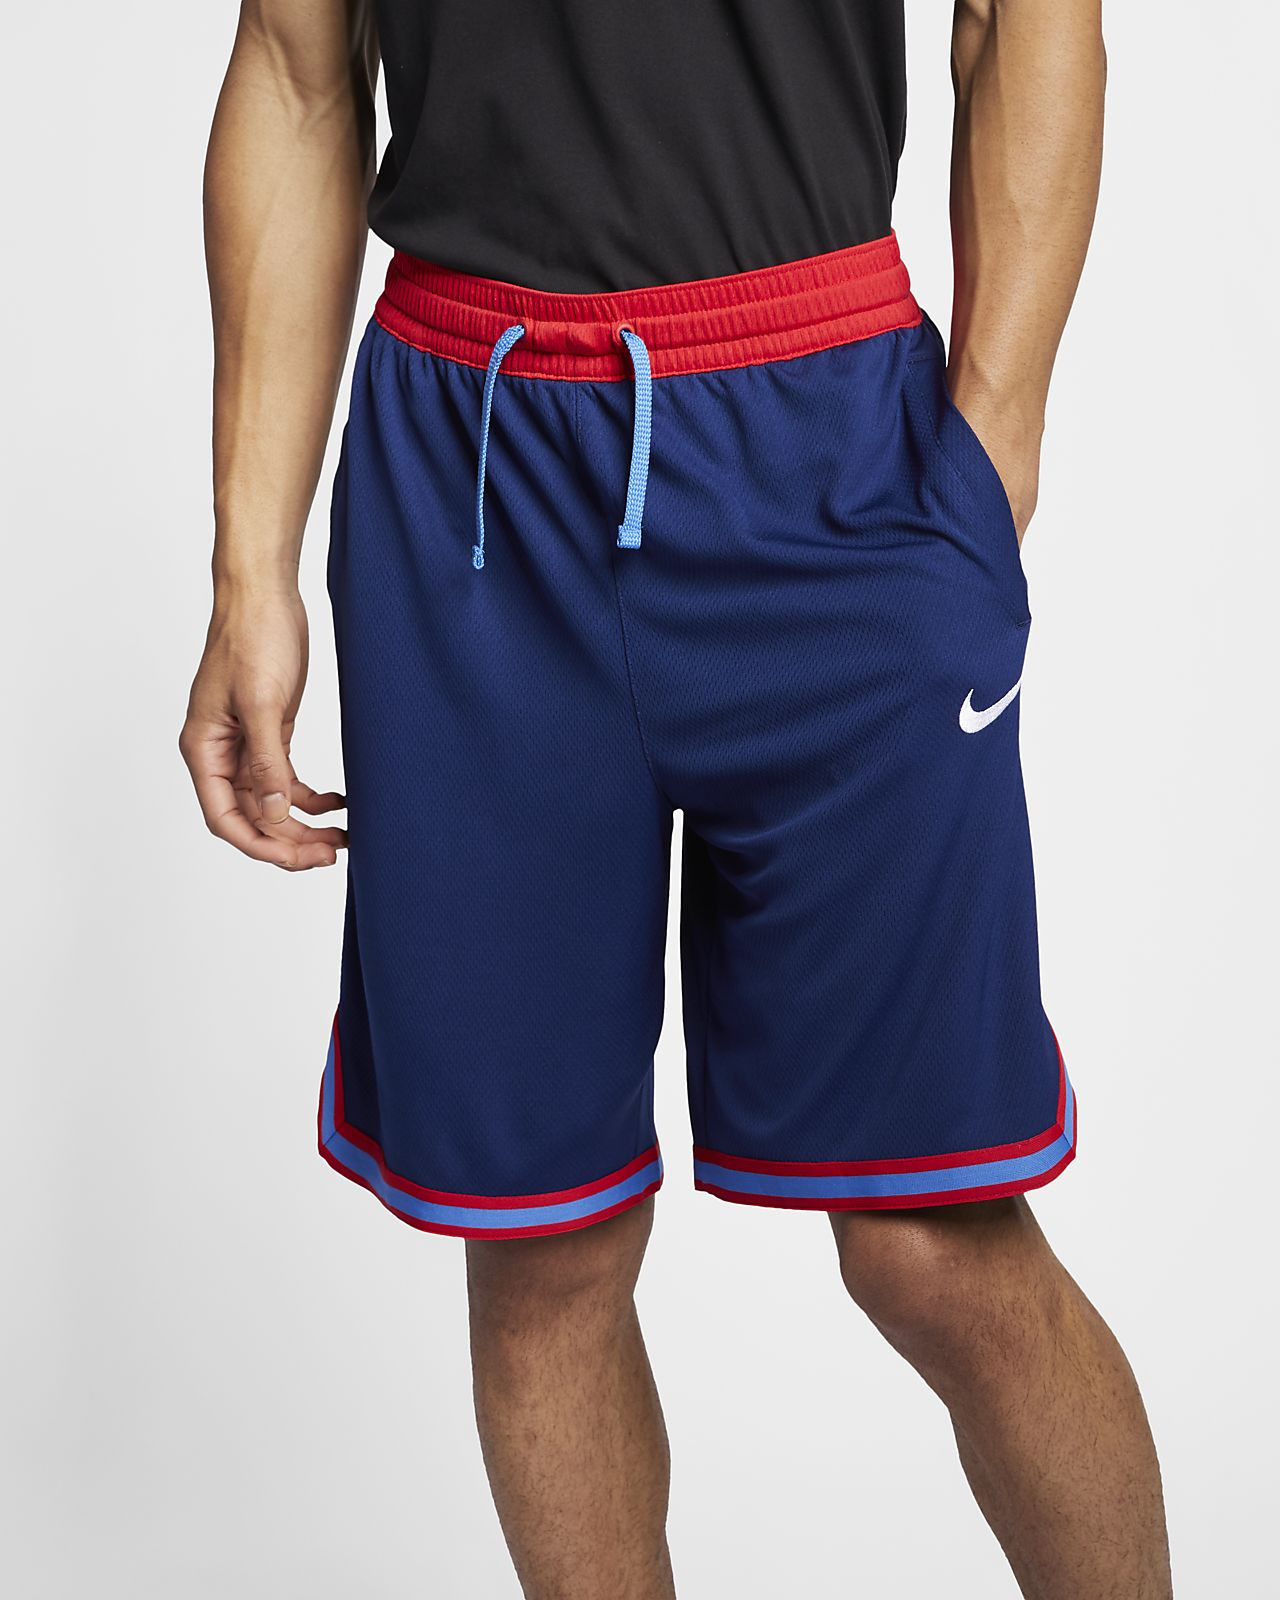 Shorts da basket Nike Dri-FIT DNA - Uomo